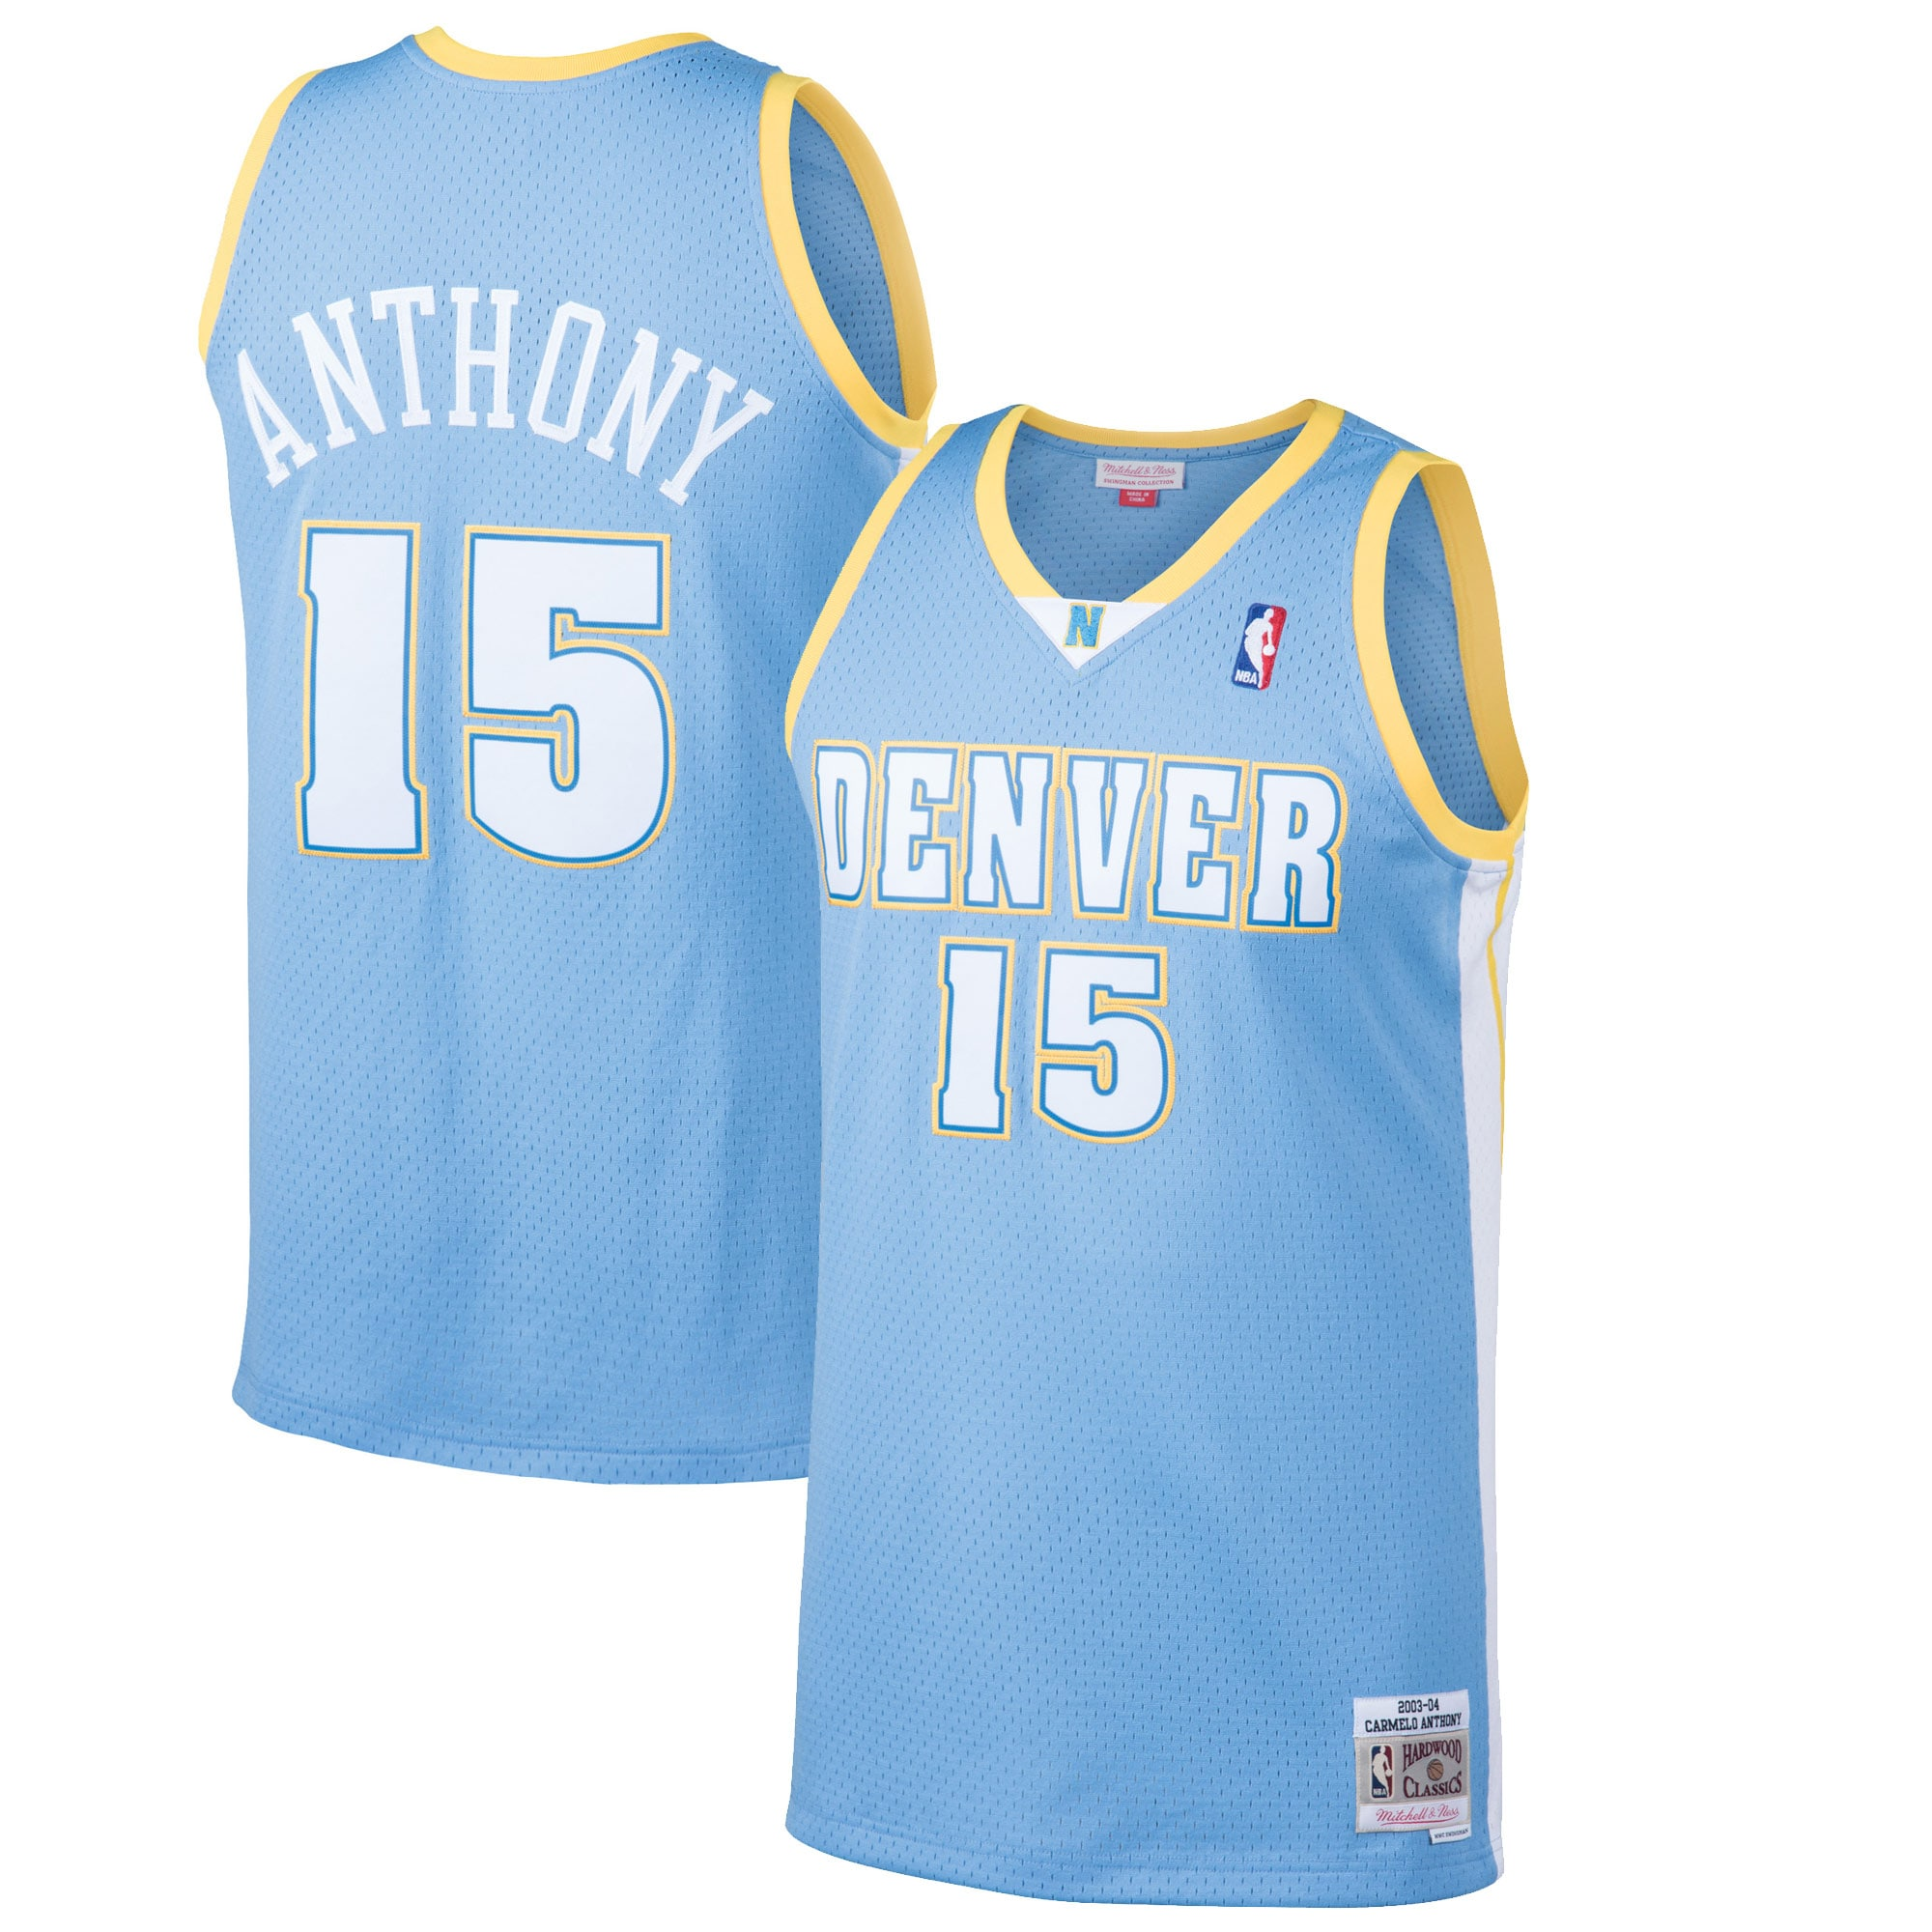 Carmelo Anthony Denver Nuggets Mitchell & Ness 2003-04 Hardwood Classics Swingman Jersey - Light Blue